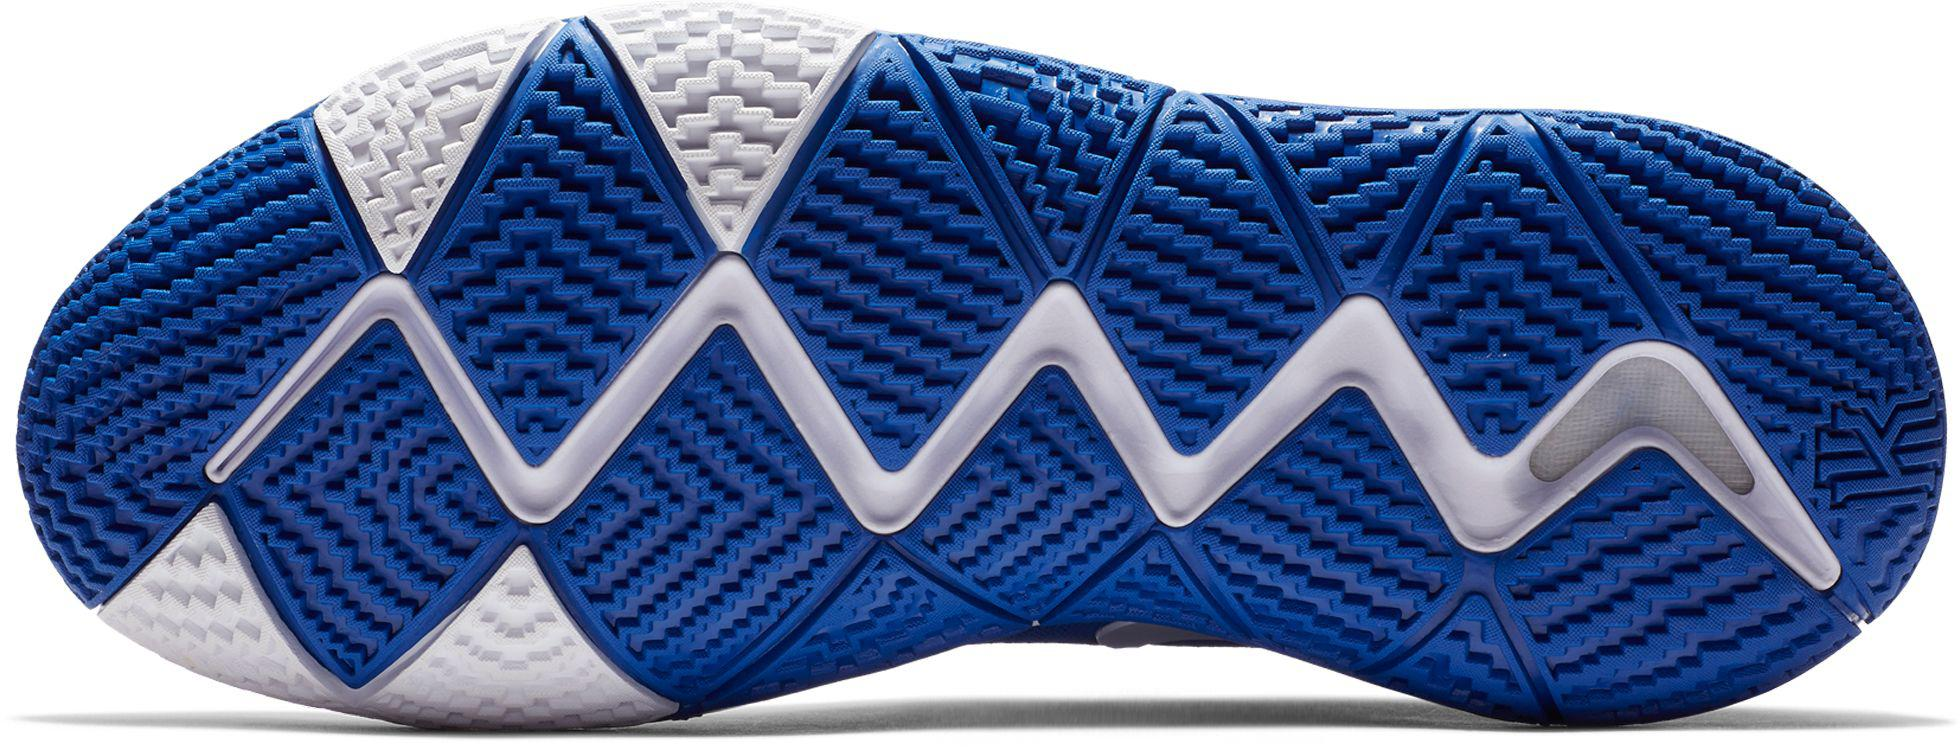 newest a5633 cb656 Men's Blue Kyrie 4 Tb Basketball Shoes